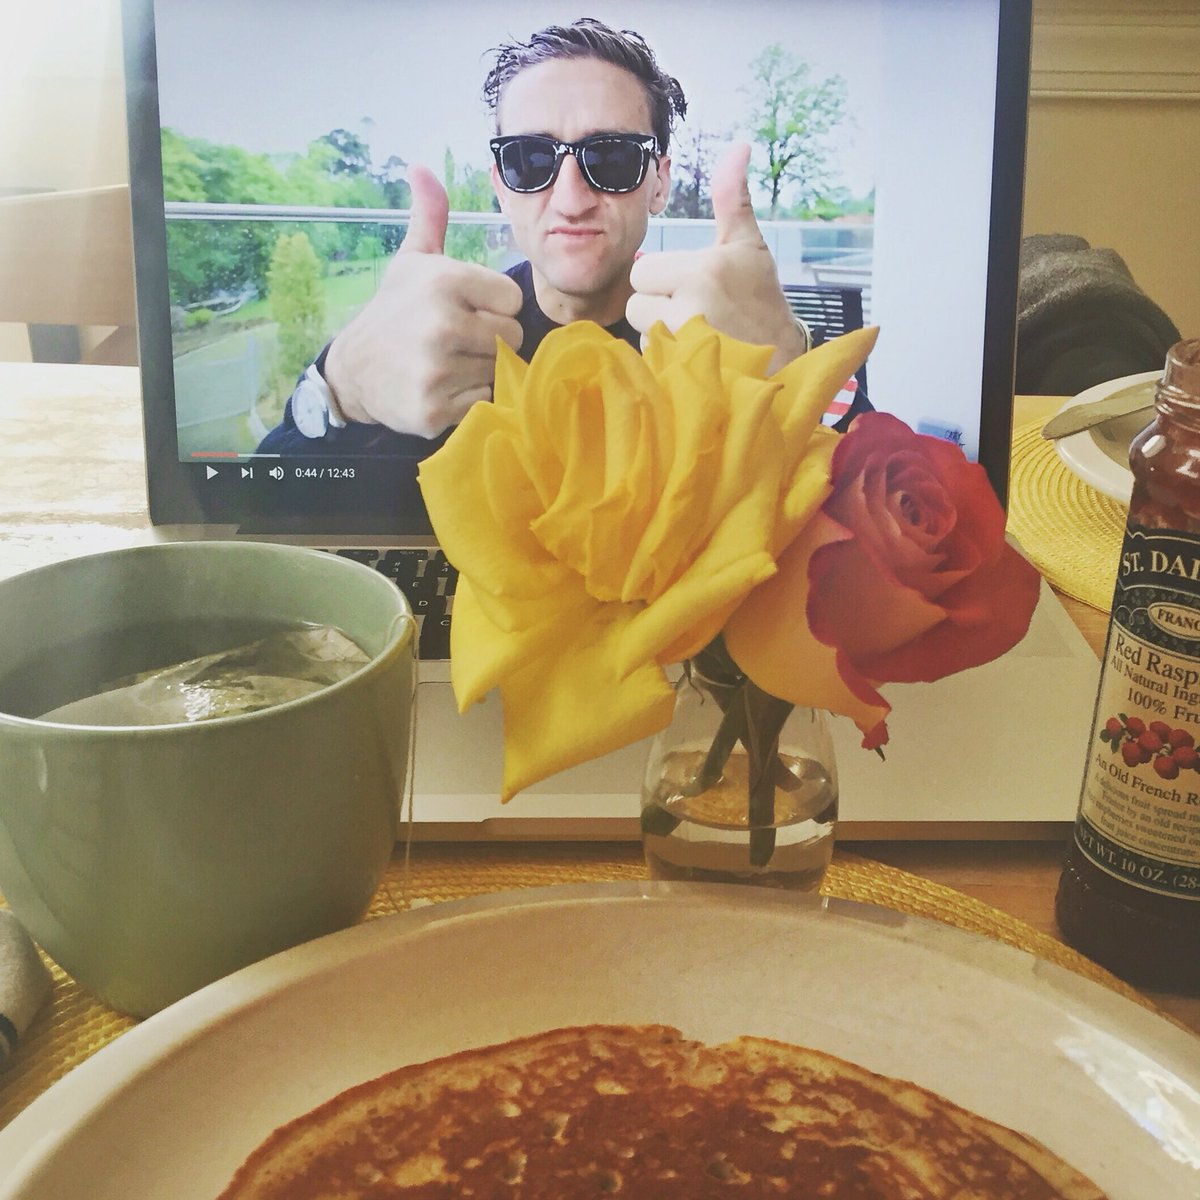 Home from France! Catching up on 17 days of @CaseyNeistat vlogs!